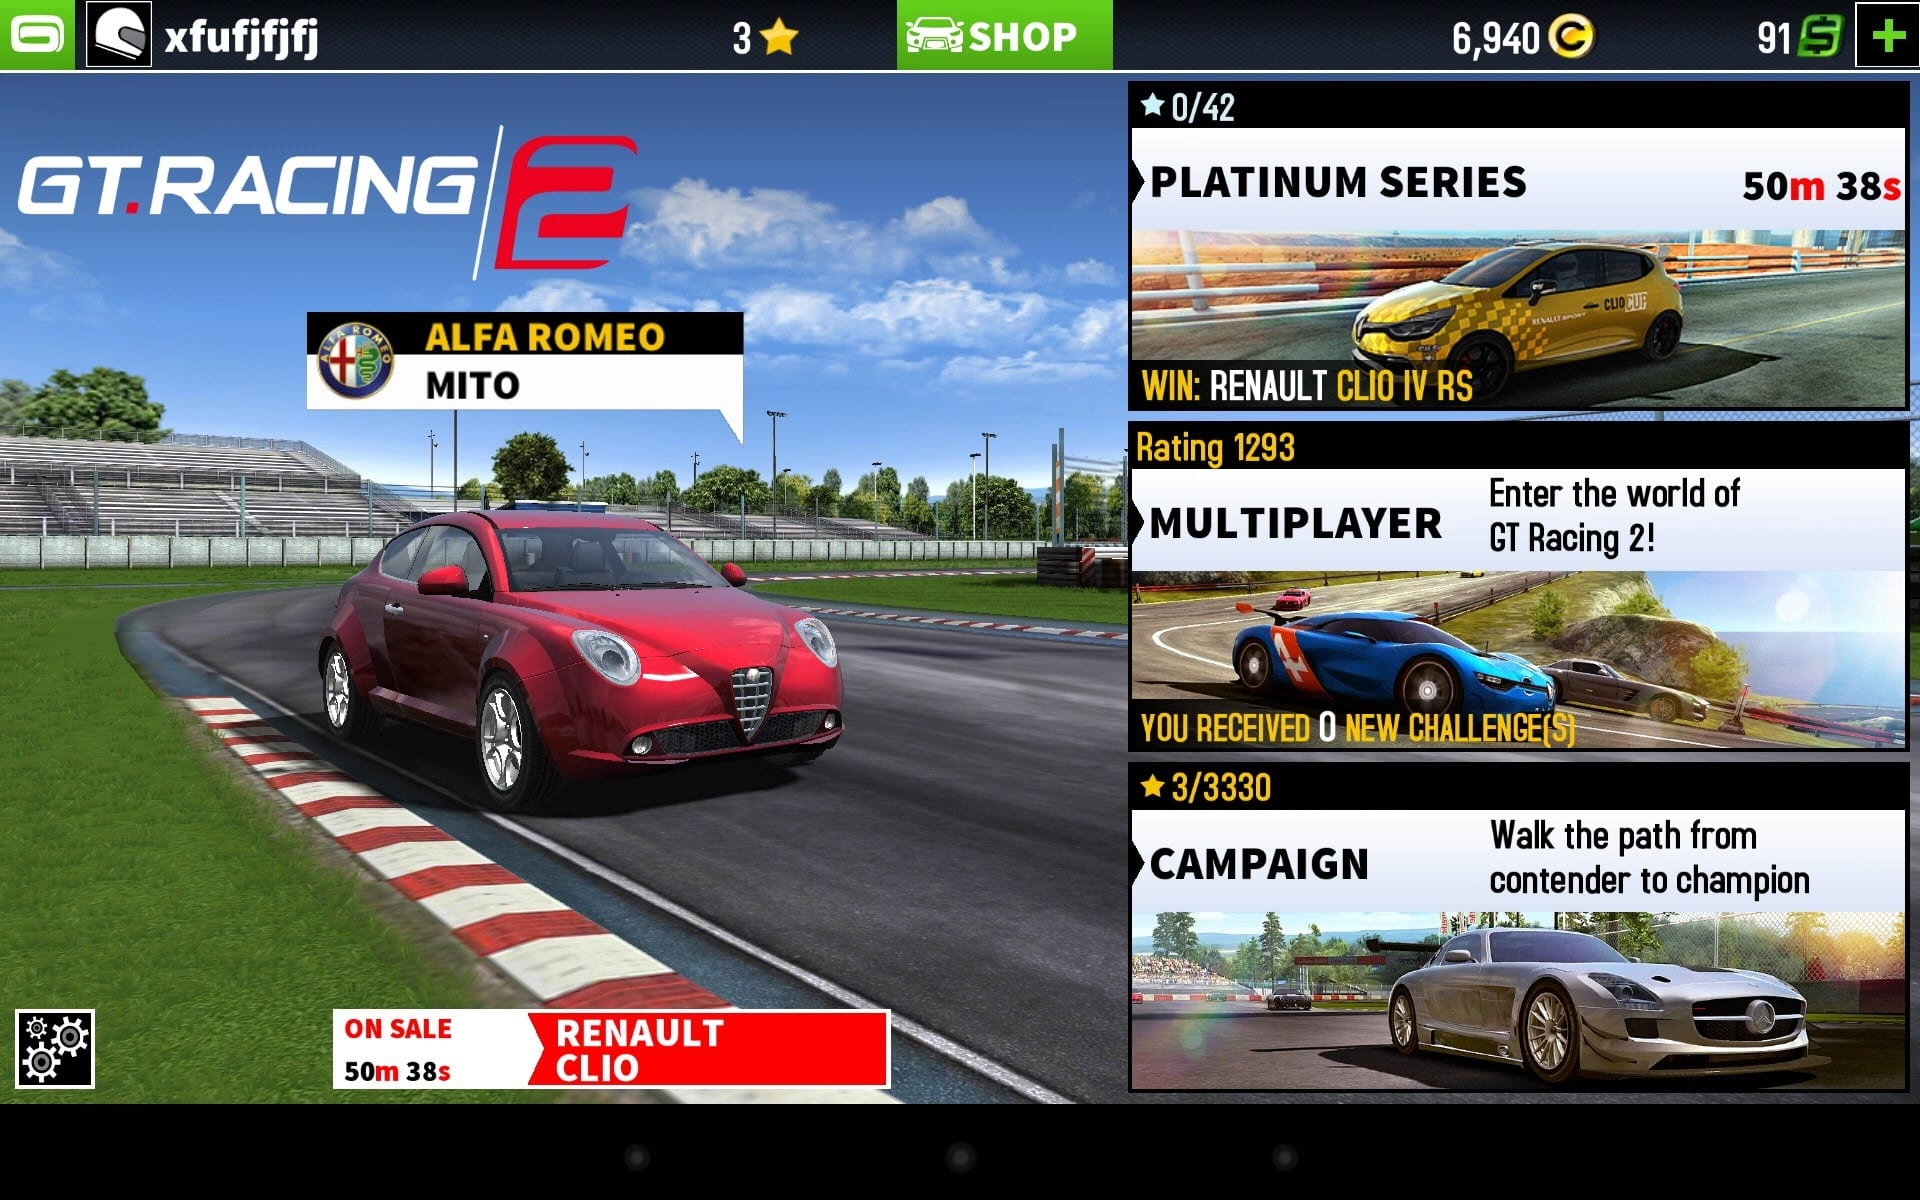 2xl racing for samsung gt-s7562 galaxy s duos 2018 – free download.